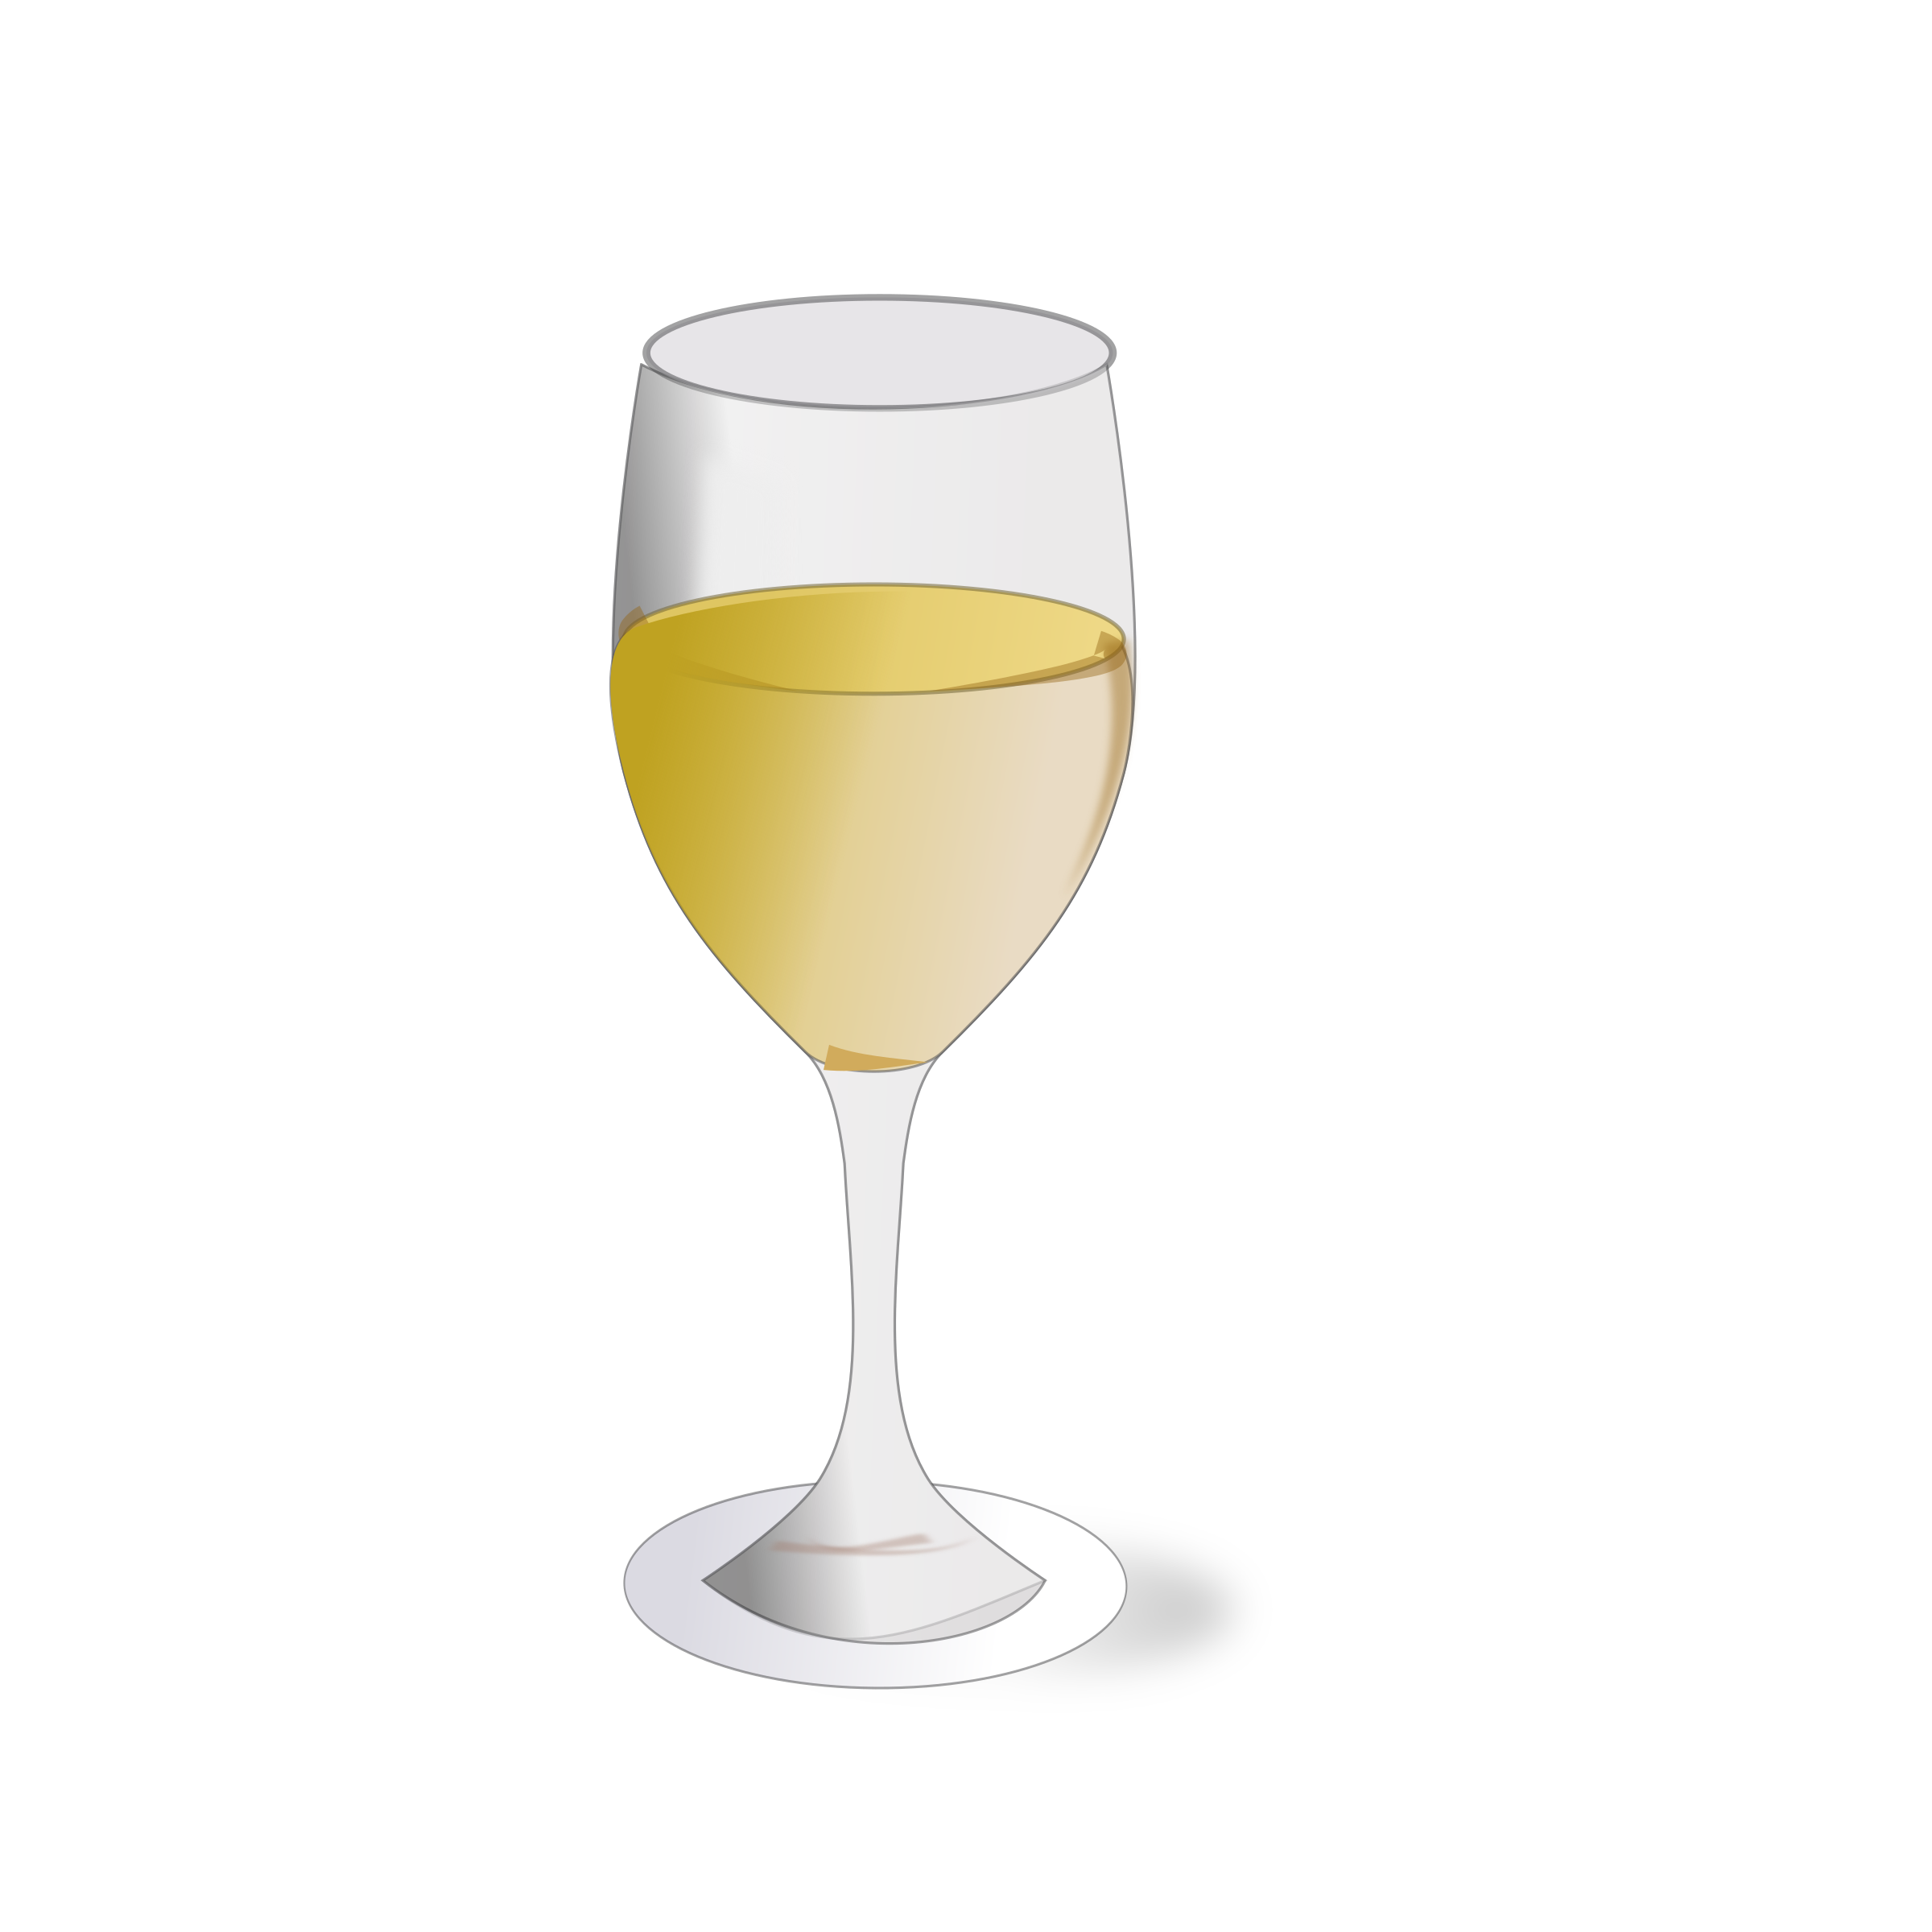 Cocktail clipart beer wine. Glass